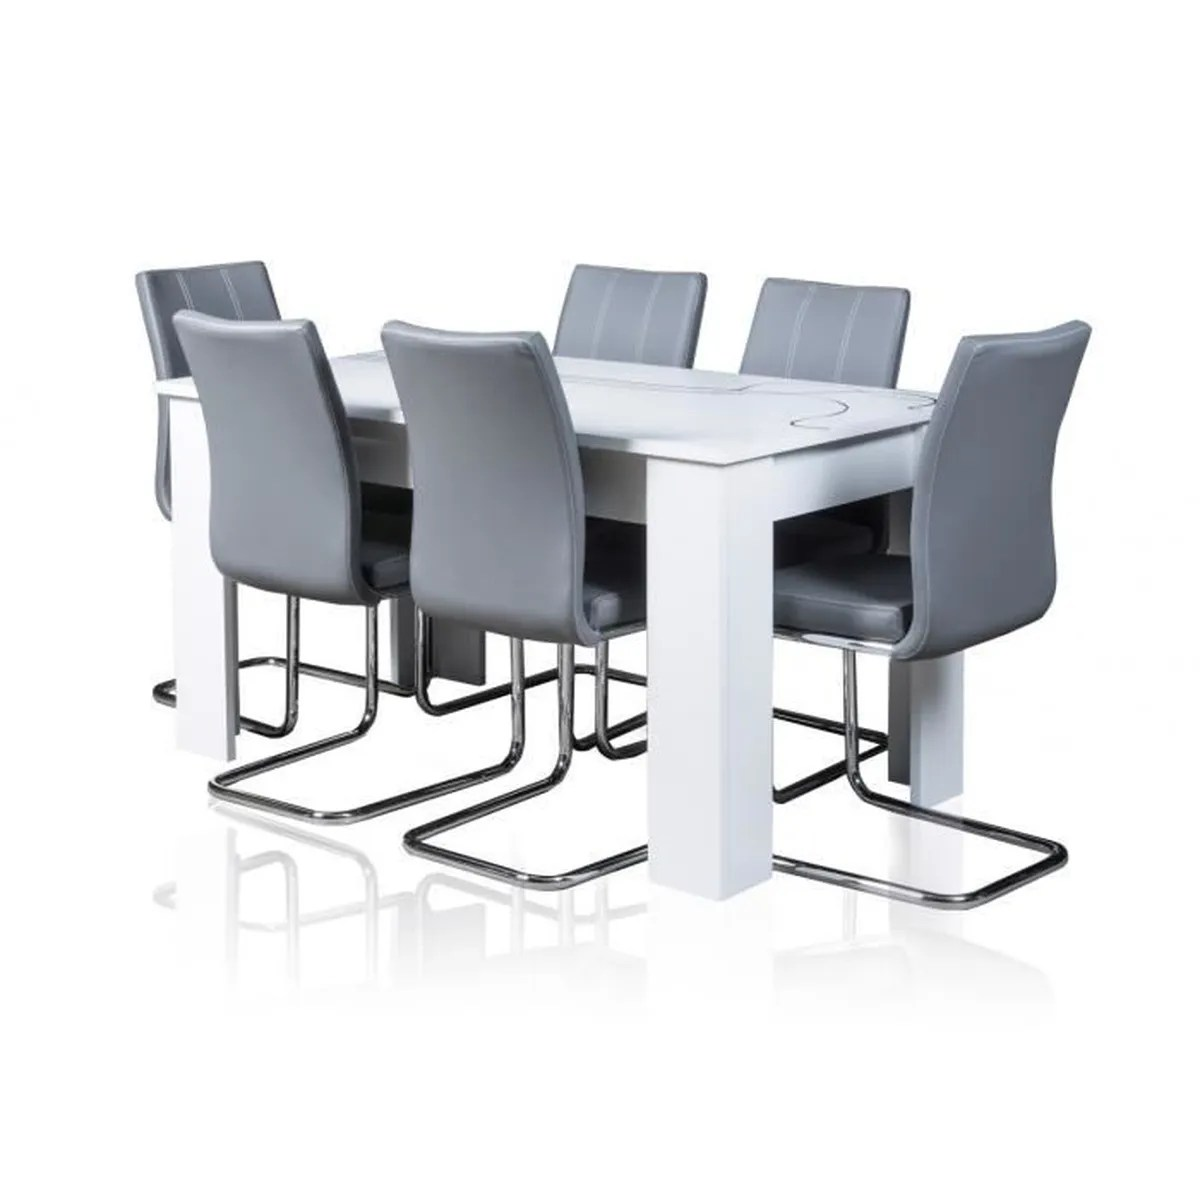 Table Extensible Avec Chaises Table Extensible 6 Chaise Achat Vente Table Extensible